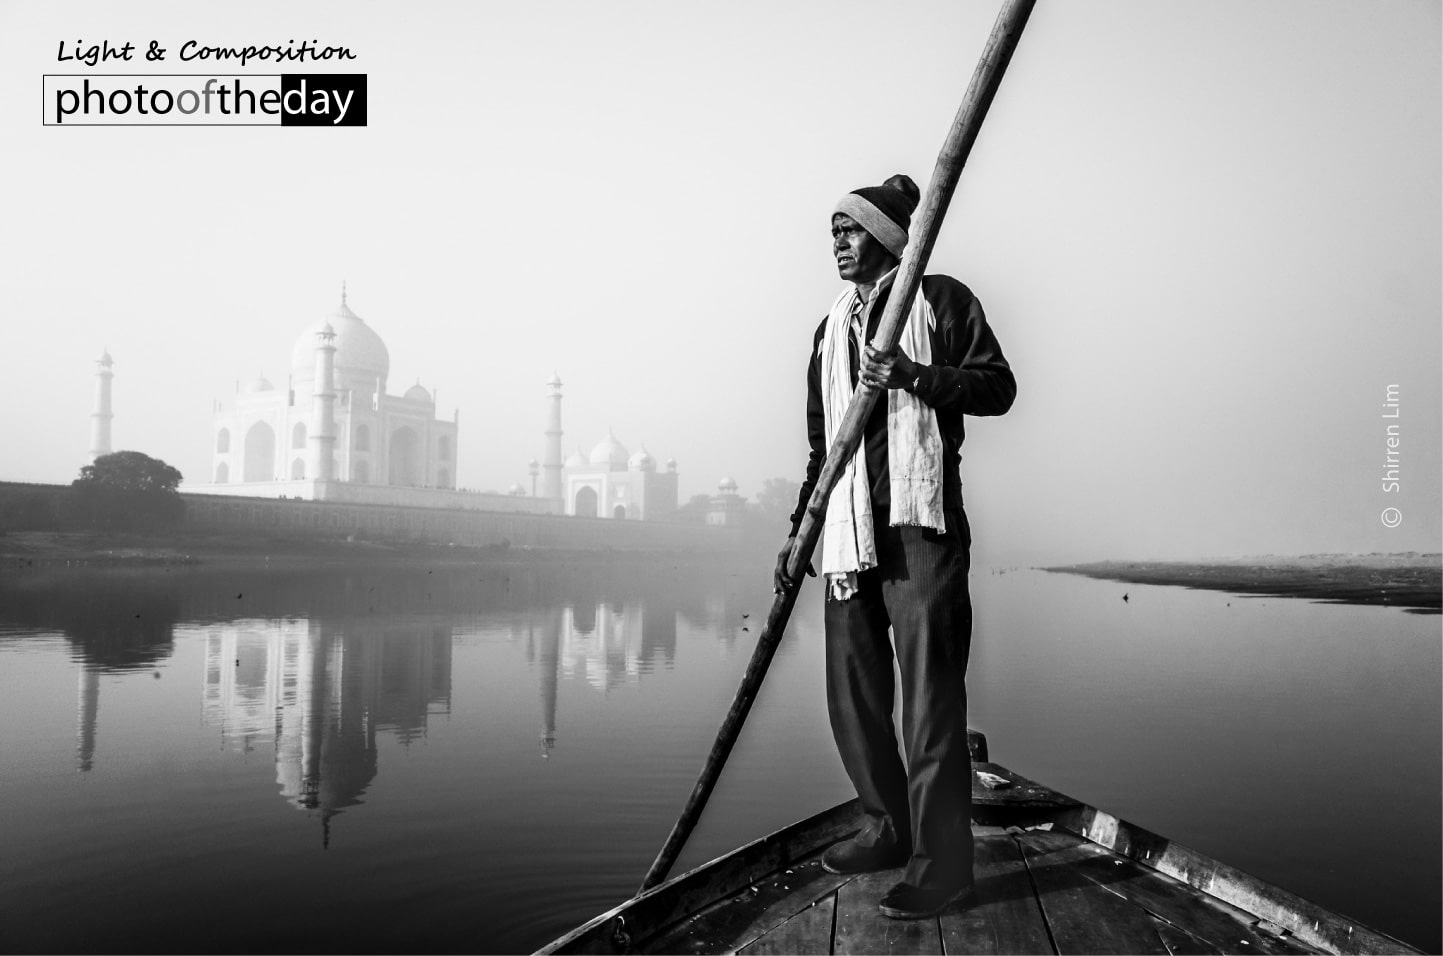 Boatman from Agra by Shirren Lim